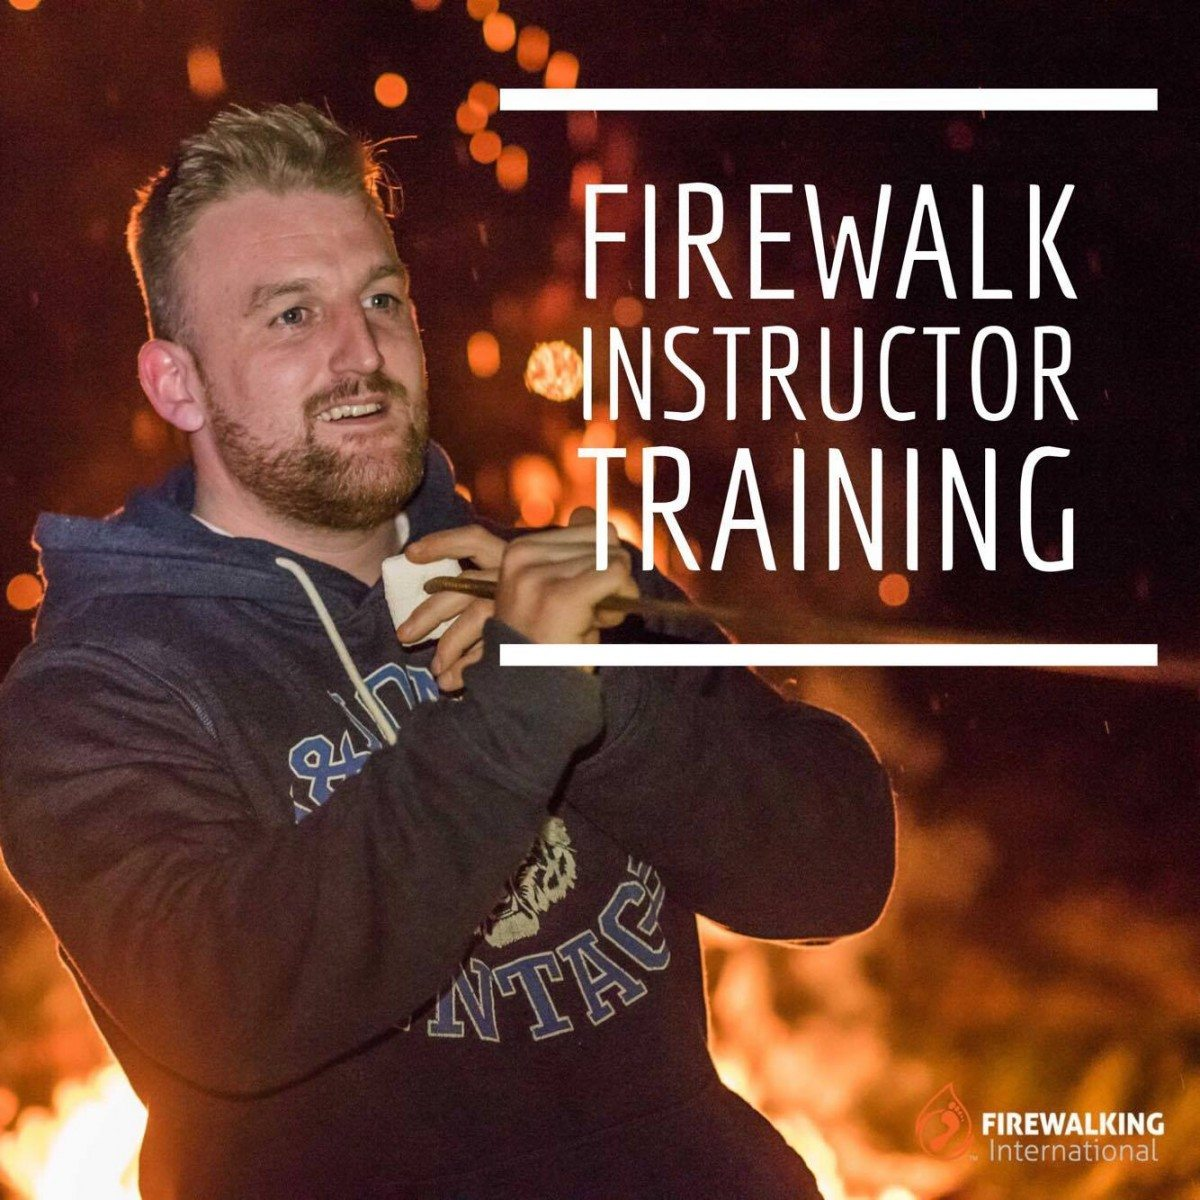 Firewalk Instructor Training